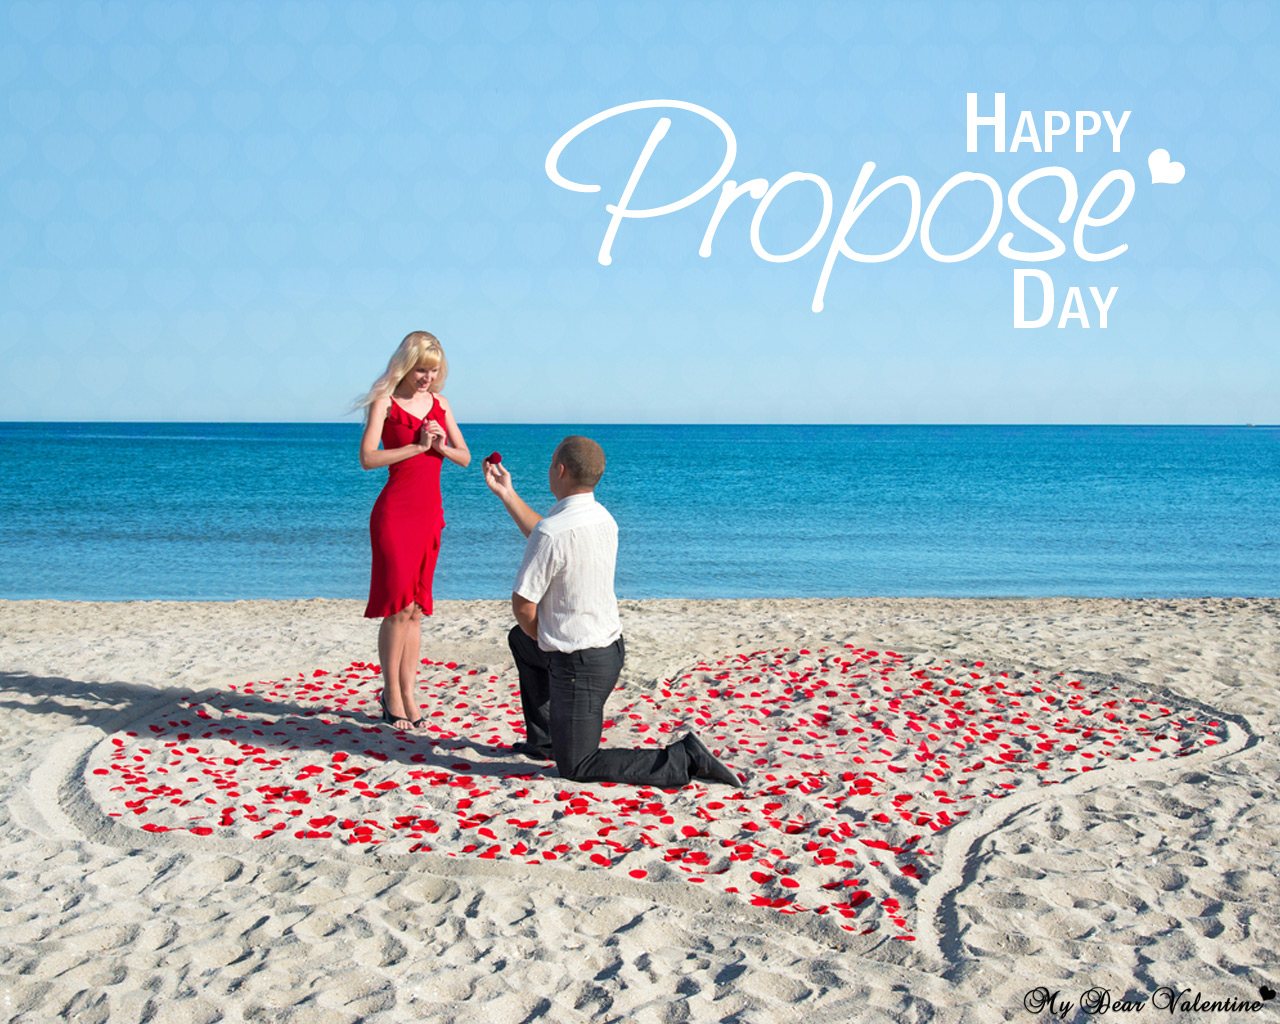 Happy Propose Day Gifs